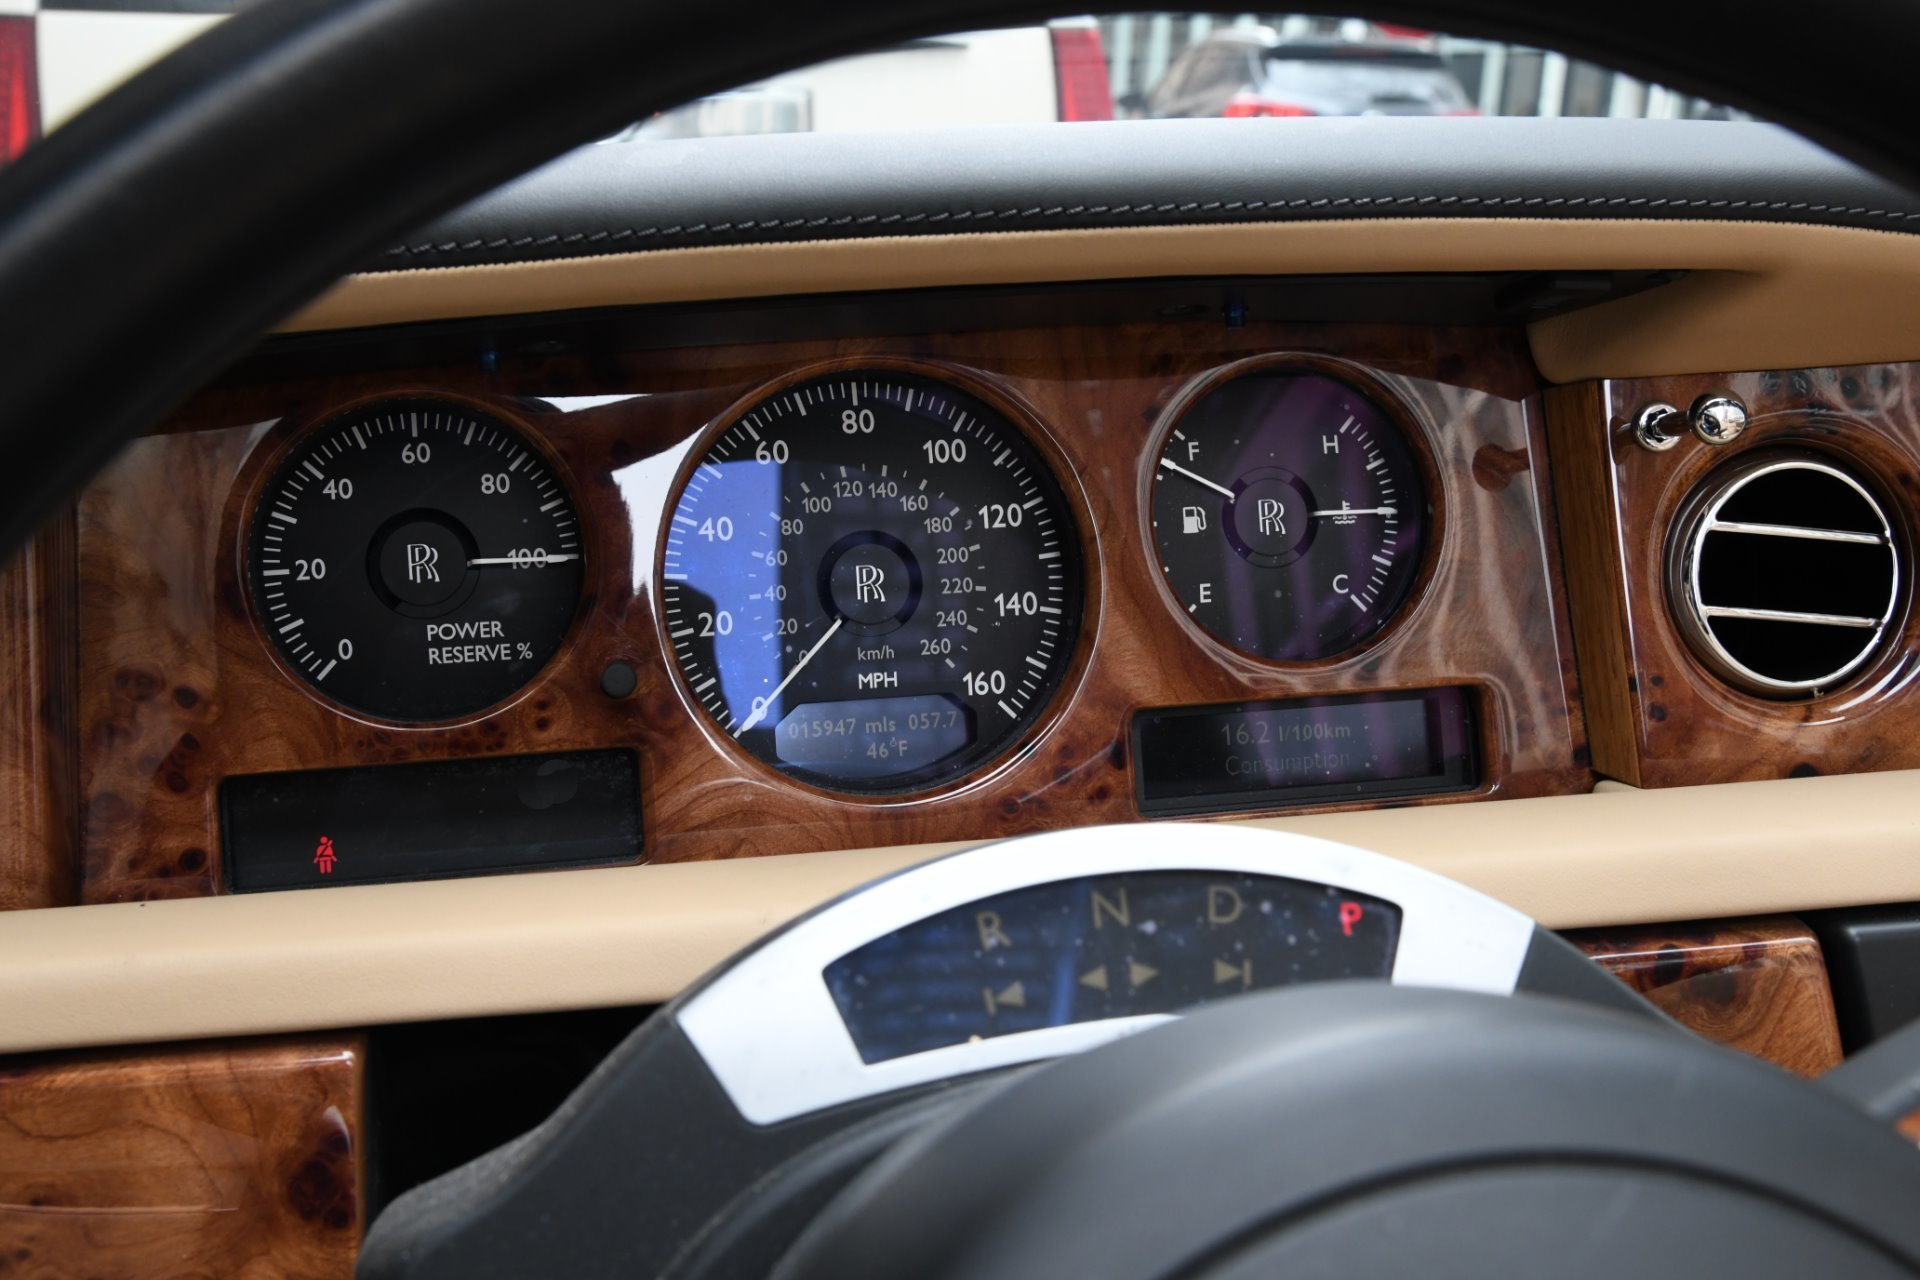 2014 Rolls Royce Phantom Drophead Coupe In Chicago Il